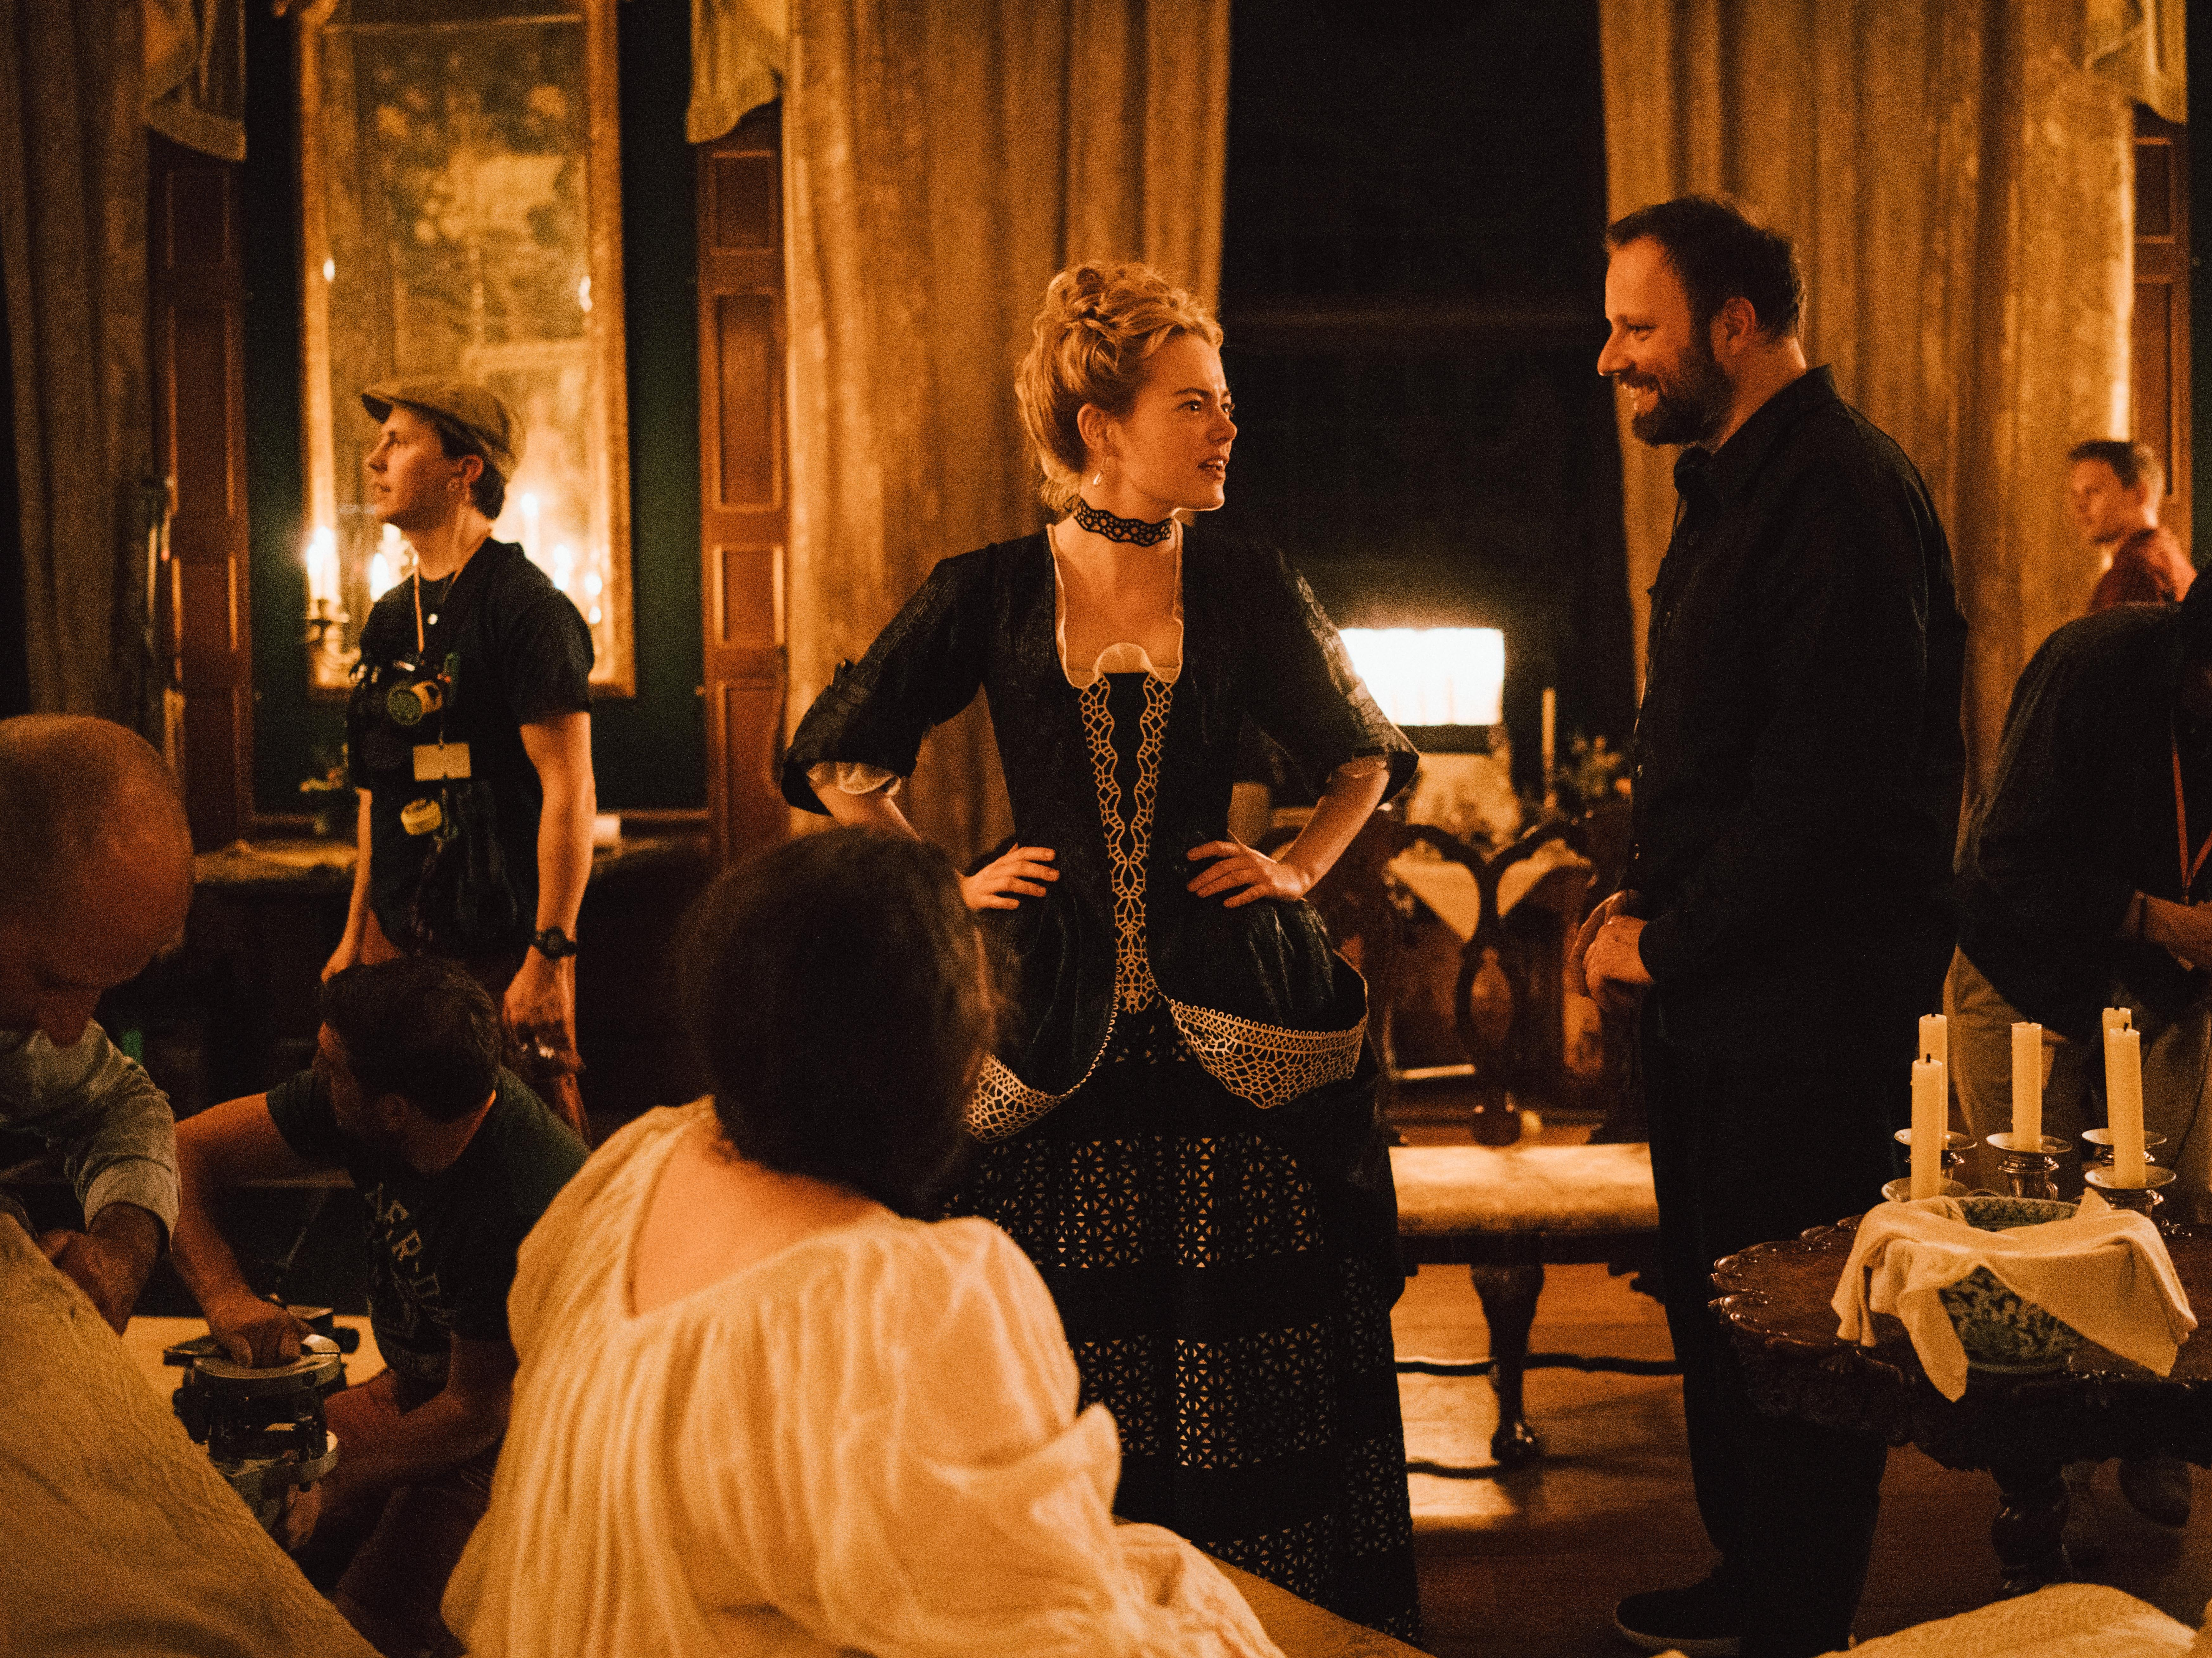 New movies this week: 'The Favourite,' 'The Mercy,' 'Becoming Astrid'